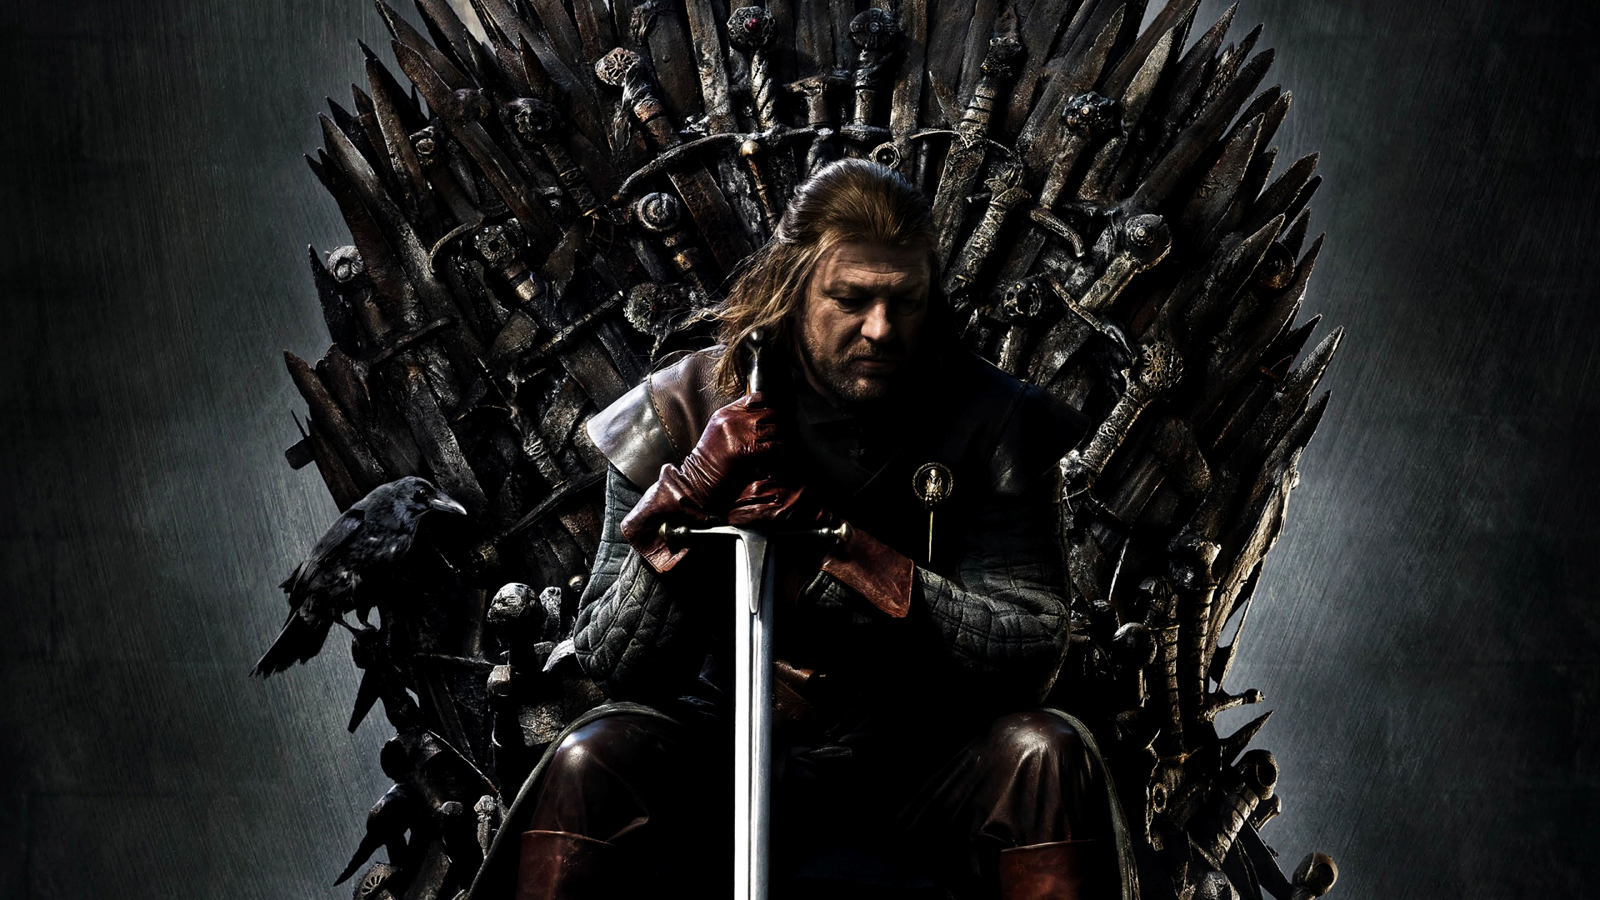 http://3.bp.blogspot.com/-yhw5iSKQYto/T-rntOPXQ4I/AAAAAAAACUs/dgHaP2J_3TY/s1600/Sean_Bean_as_Ned_Stark_on_Throne_Game_of_Thrones_HD_Wallpaper-Vvallpaper.Net.jpg